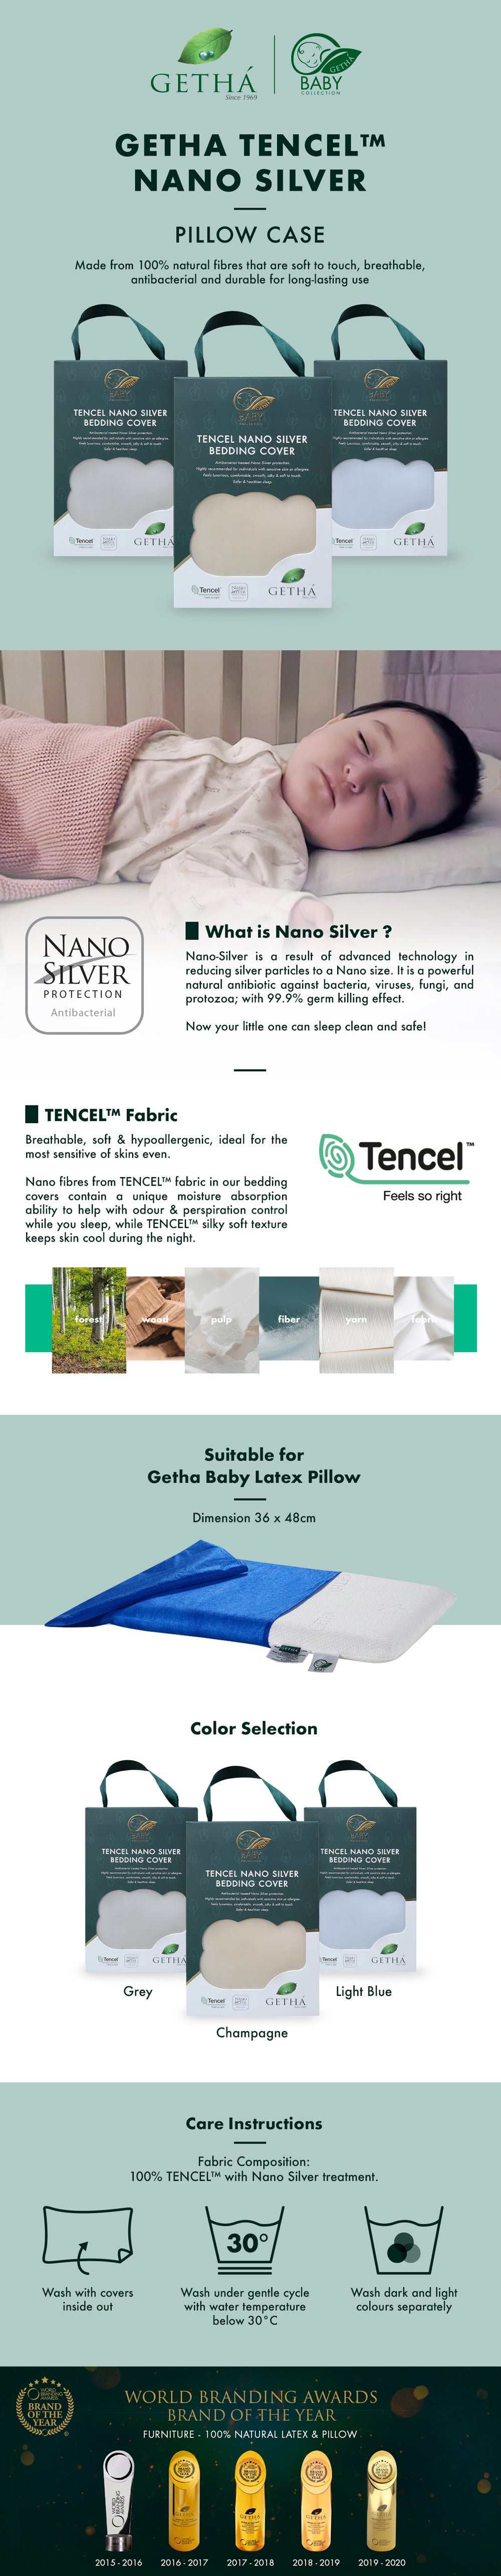 Getha Tencel Nano Silver Pillow Case – Baby Latex Pillow